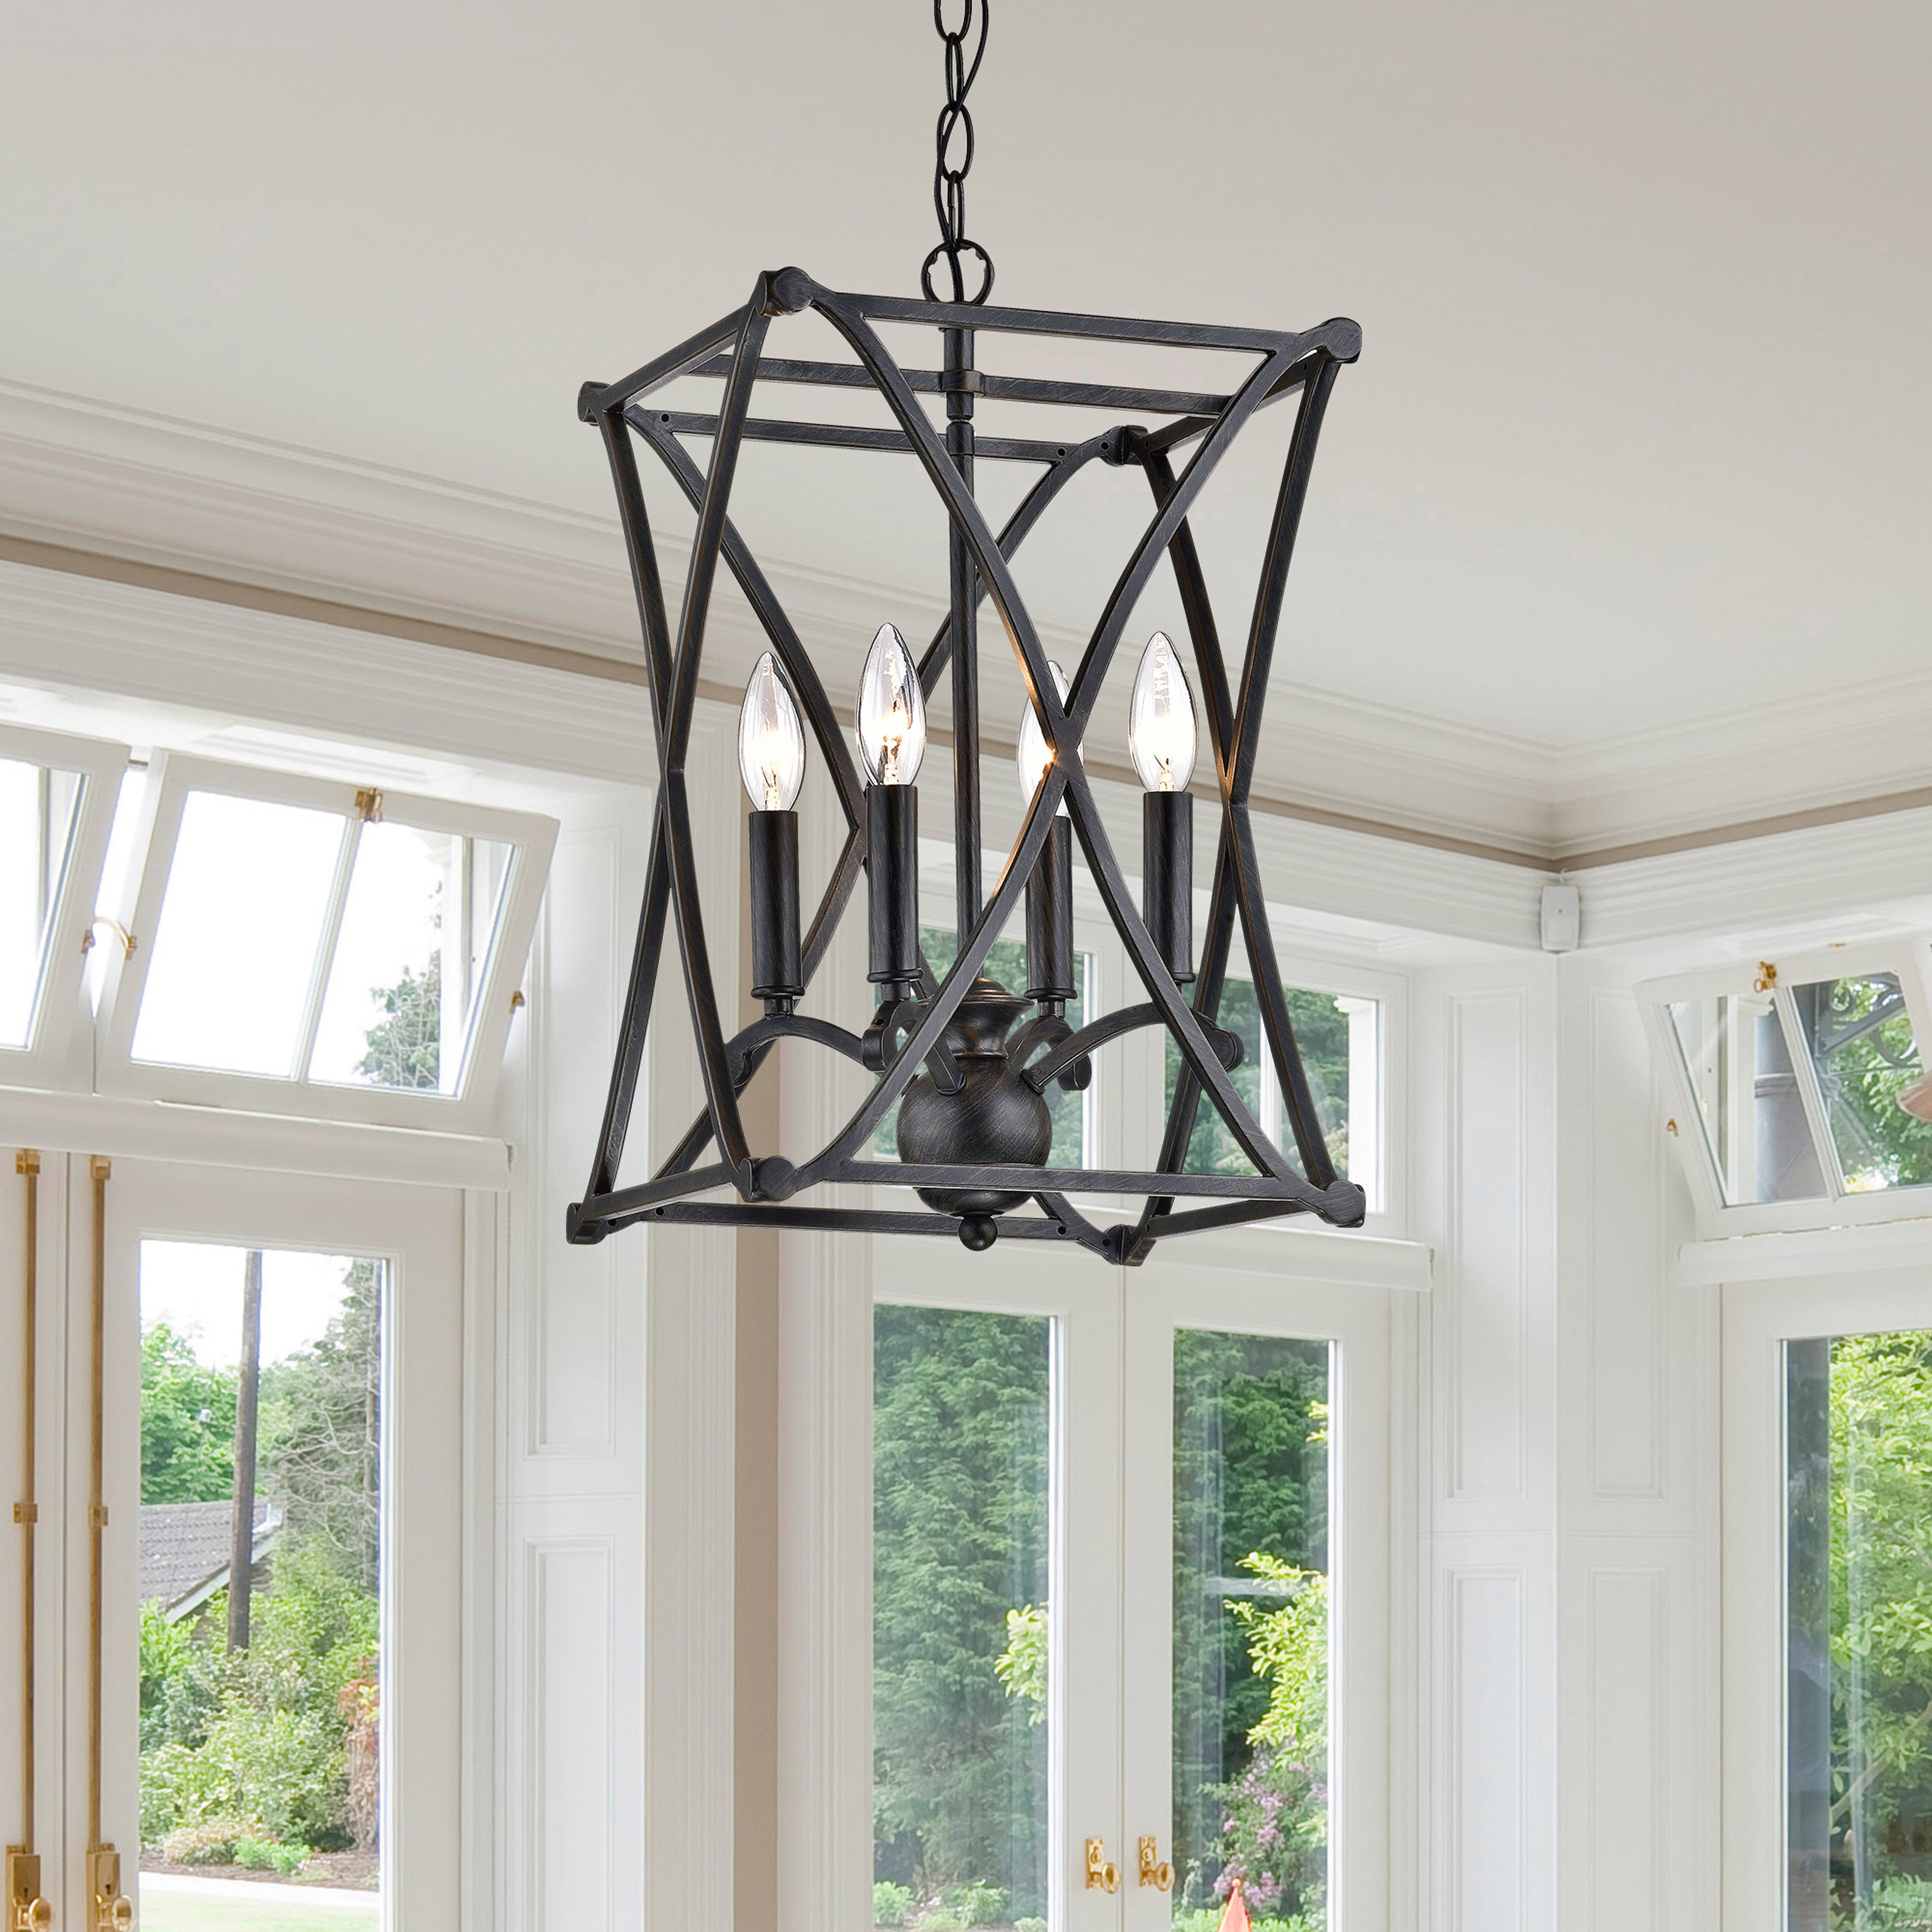 Shop the gray barn inyo antique black iron chandelier on sale free shipping today overstock com 20133376